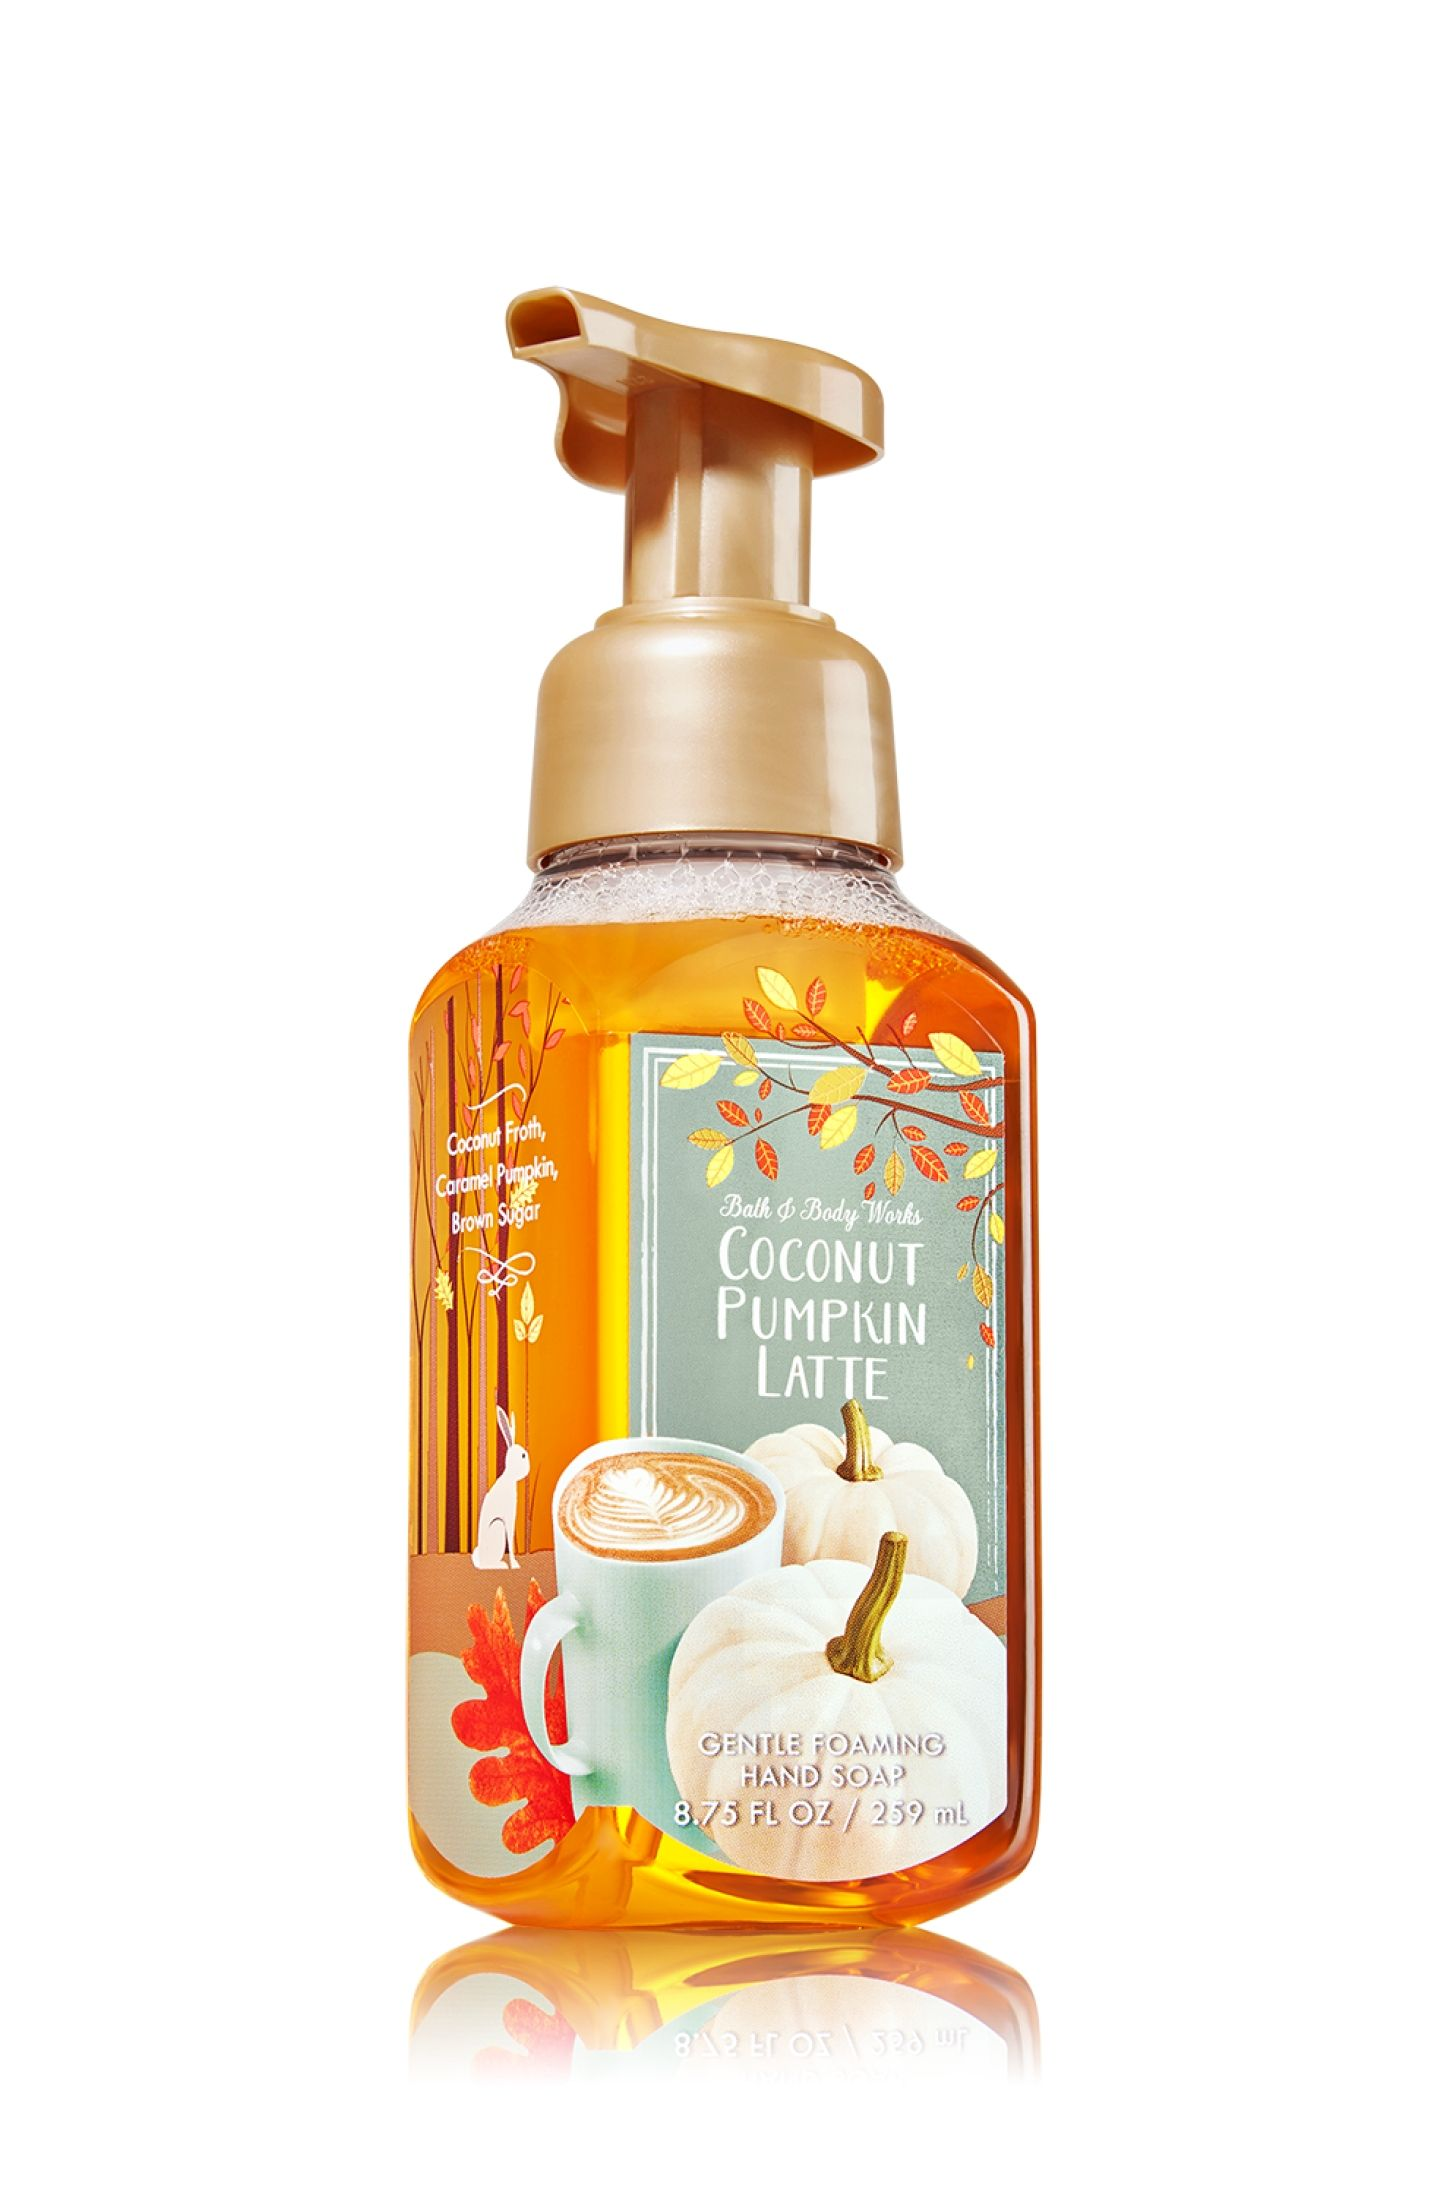 Coconut Pumpkin Latte Gentle Foaming Hand Soap Soap Sanitizer